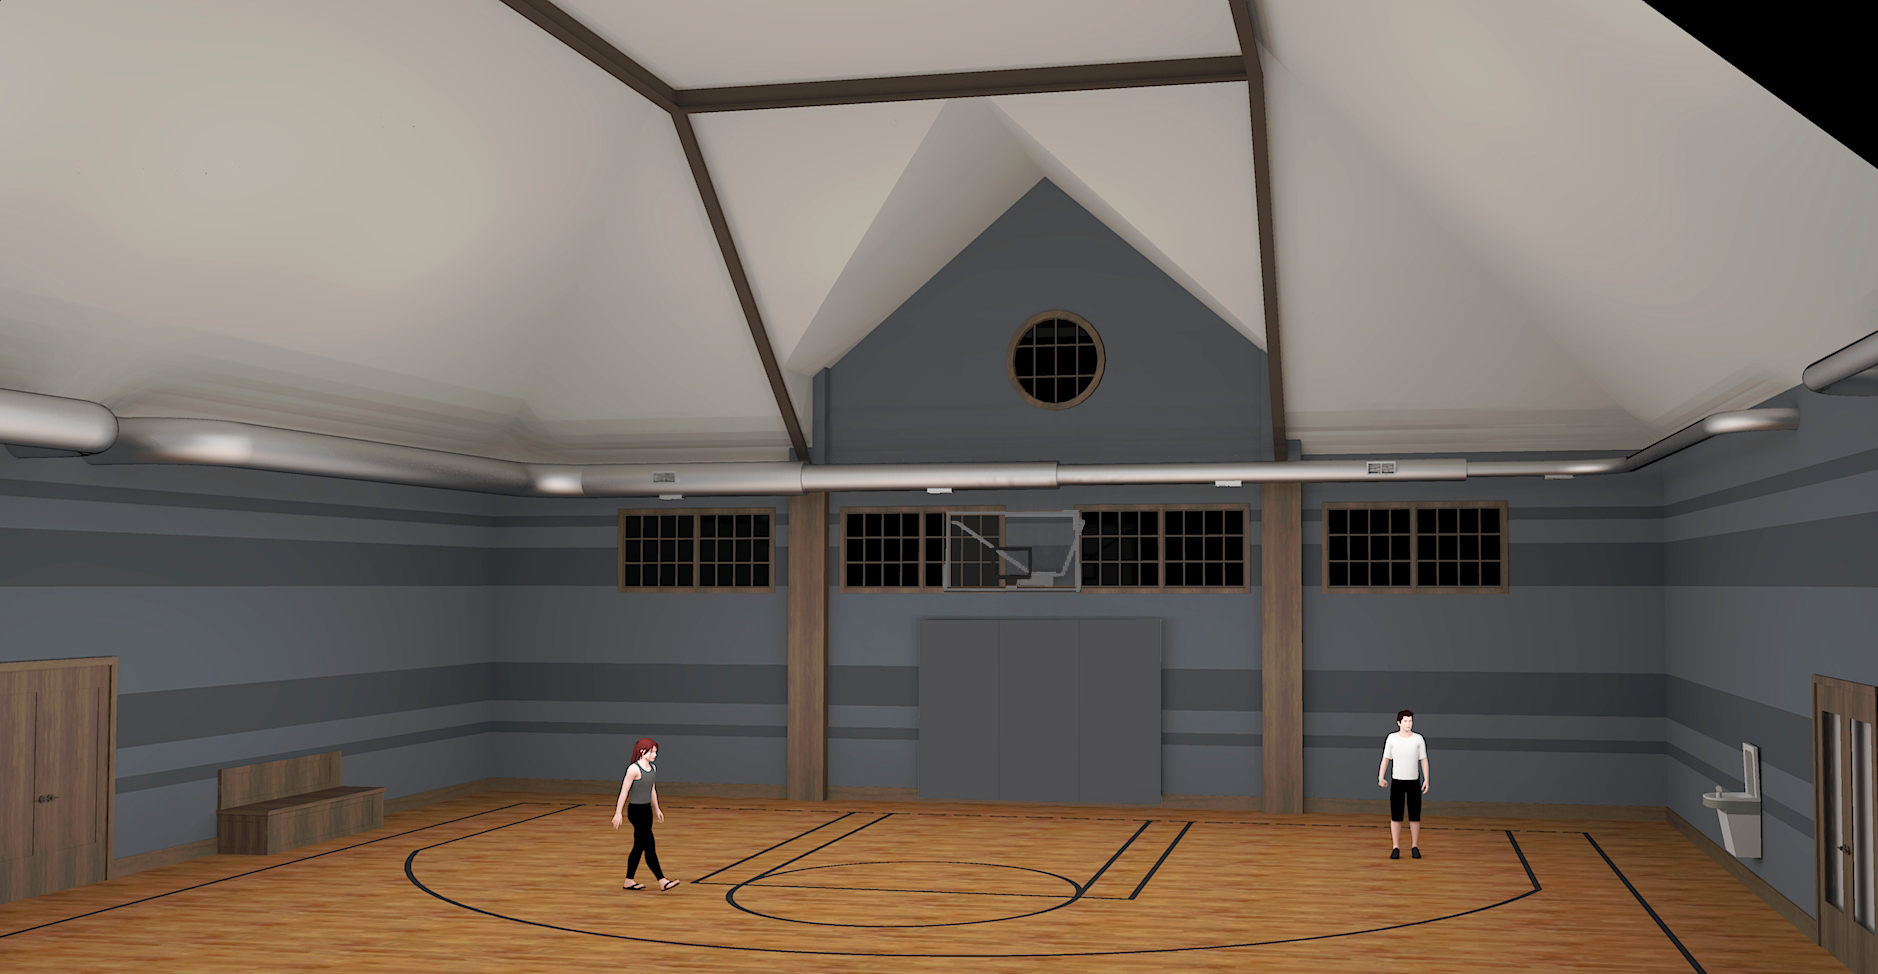 Initial Sketchup Concept Rendering #2 for Basketball Court